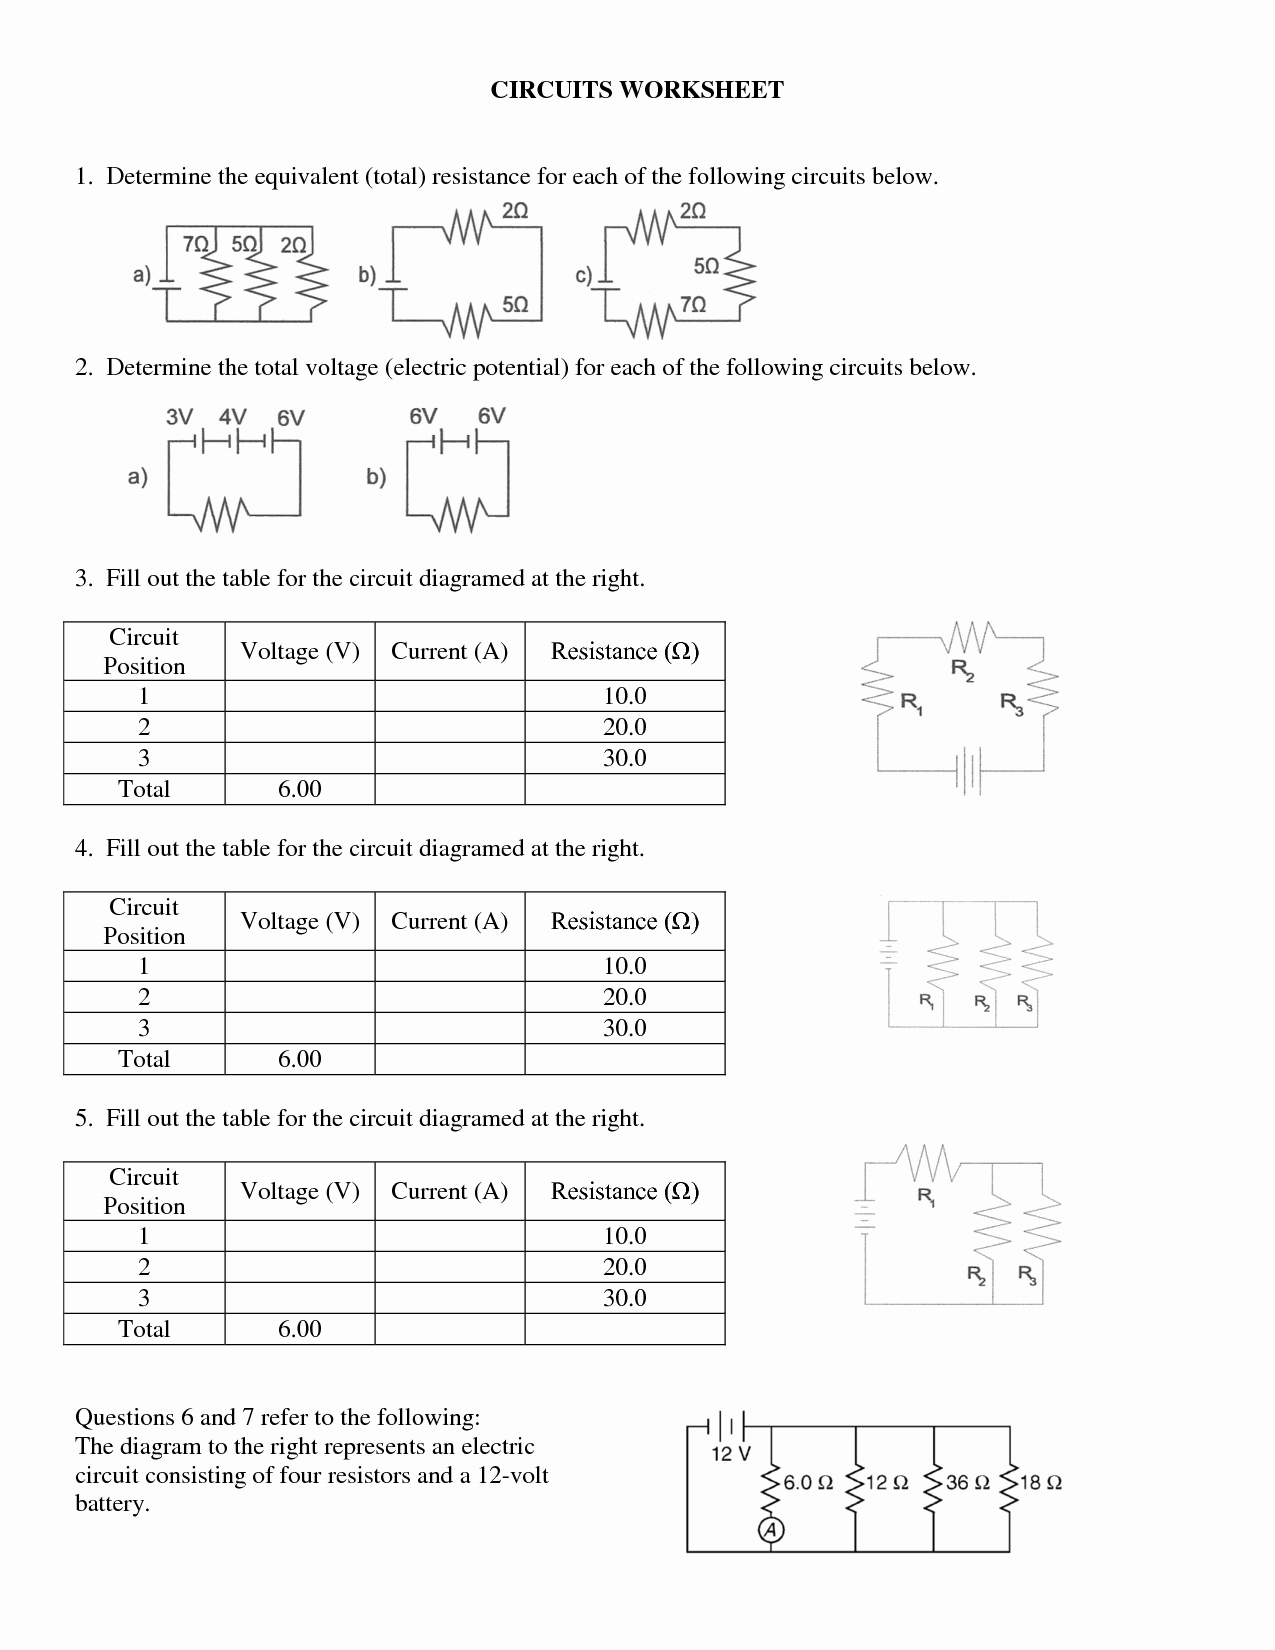 Combination Circuits Worksheet with Answers Lovely Binations Worksheet